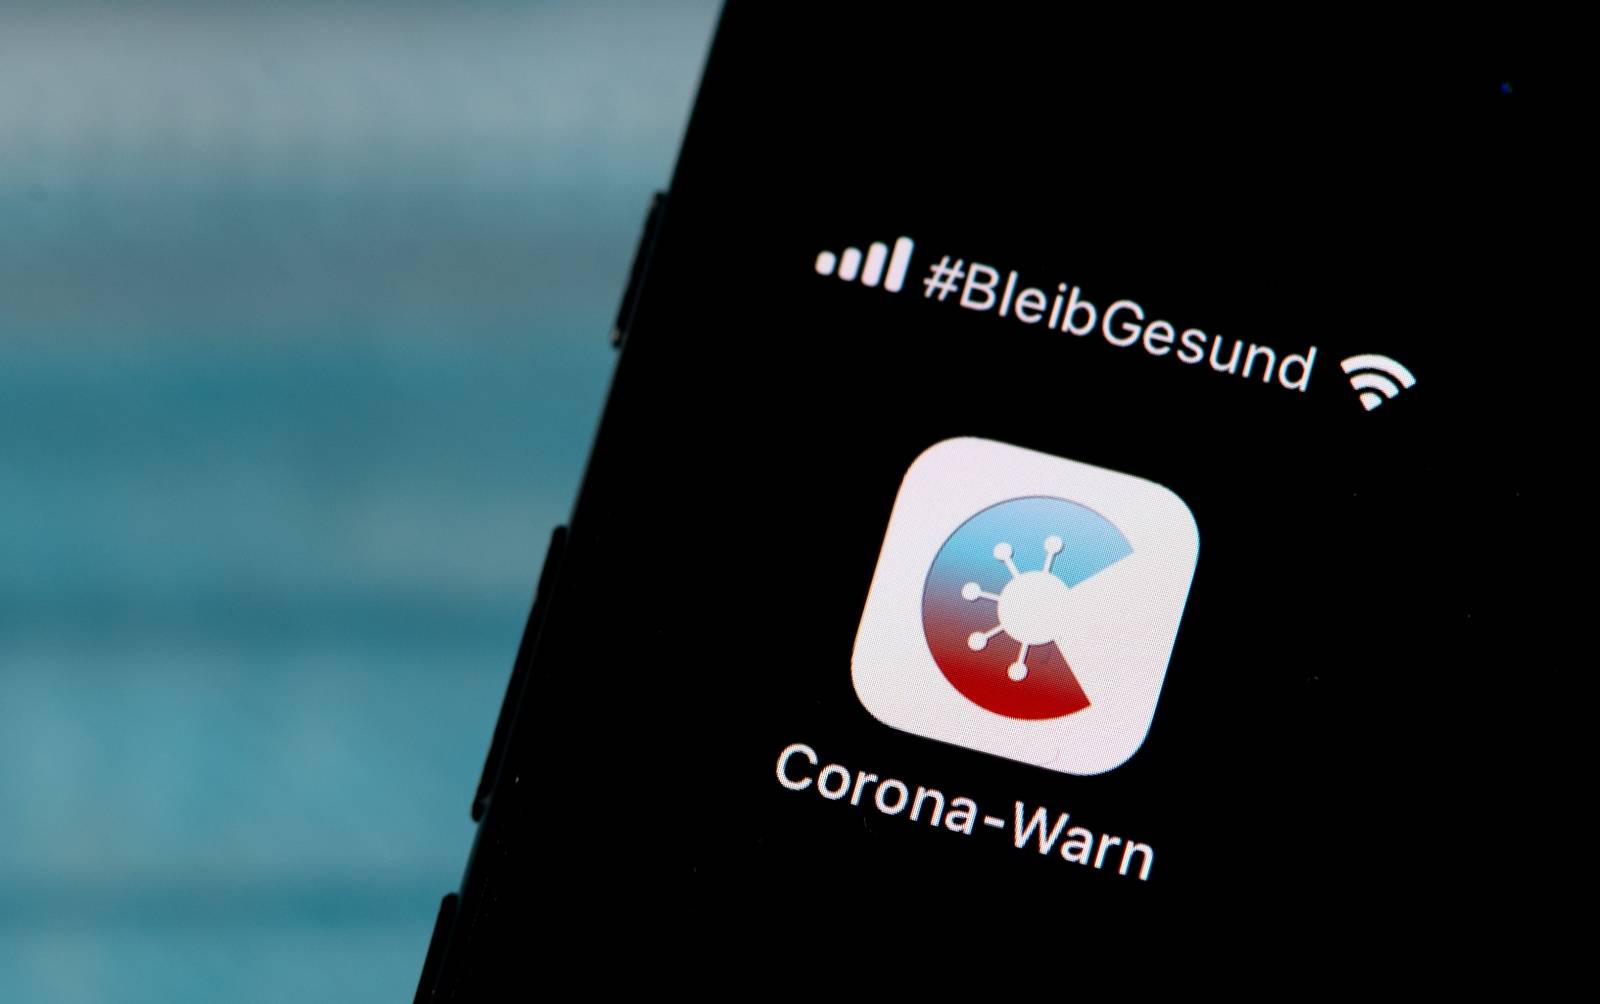 Official Corona Warning App available for download